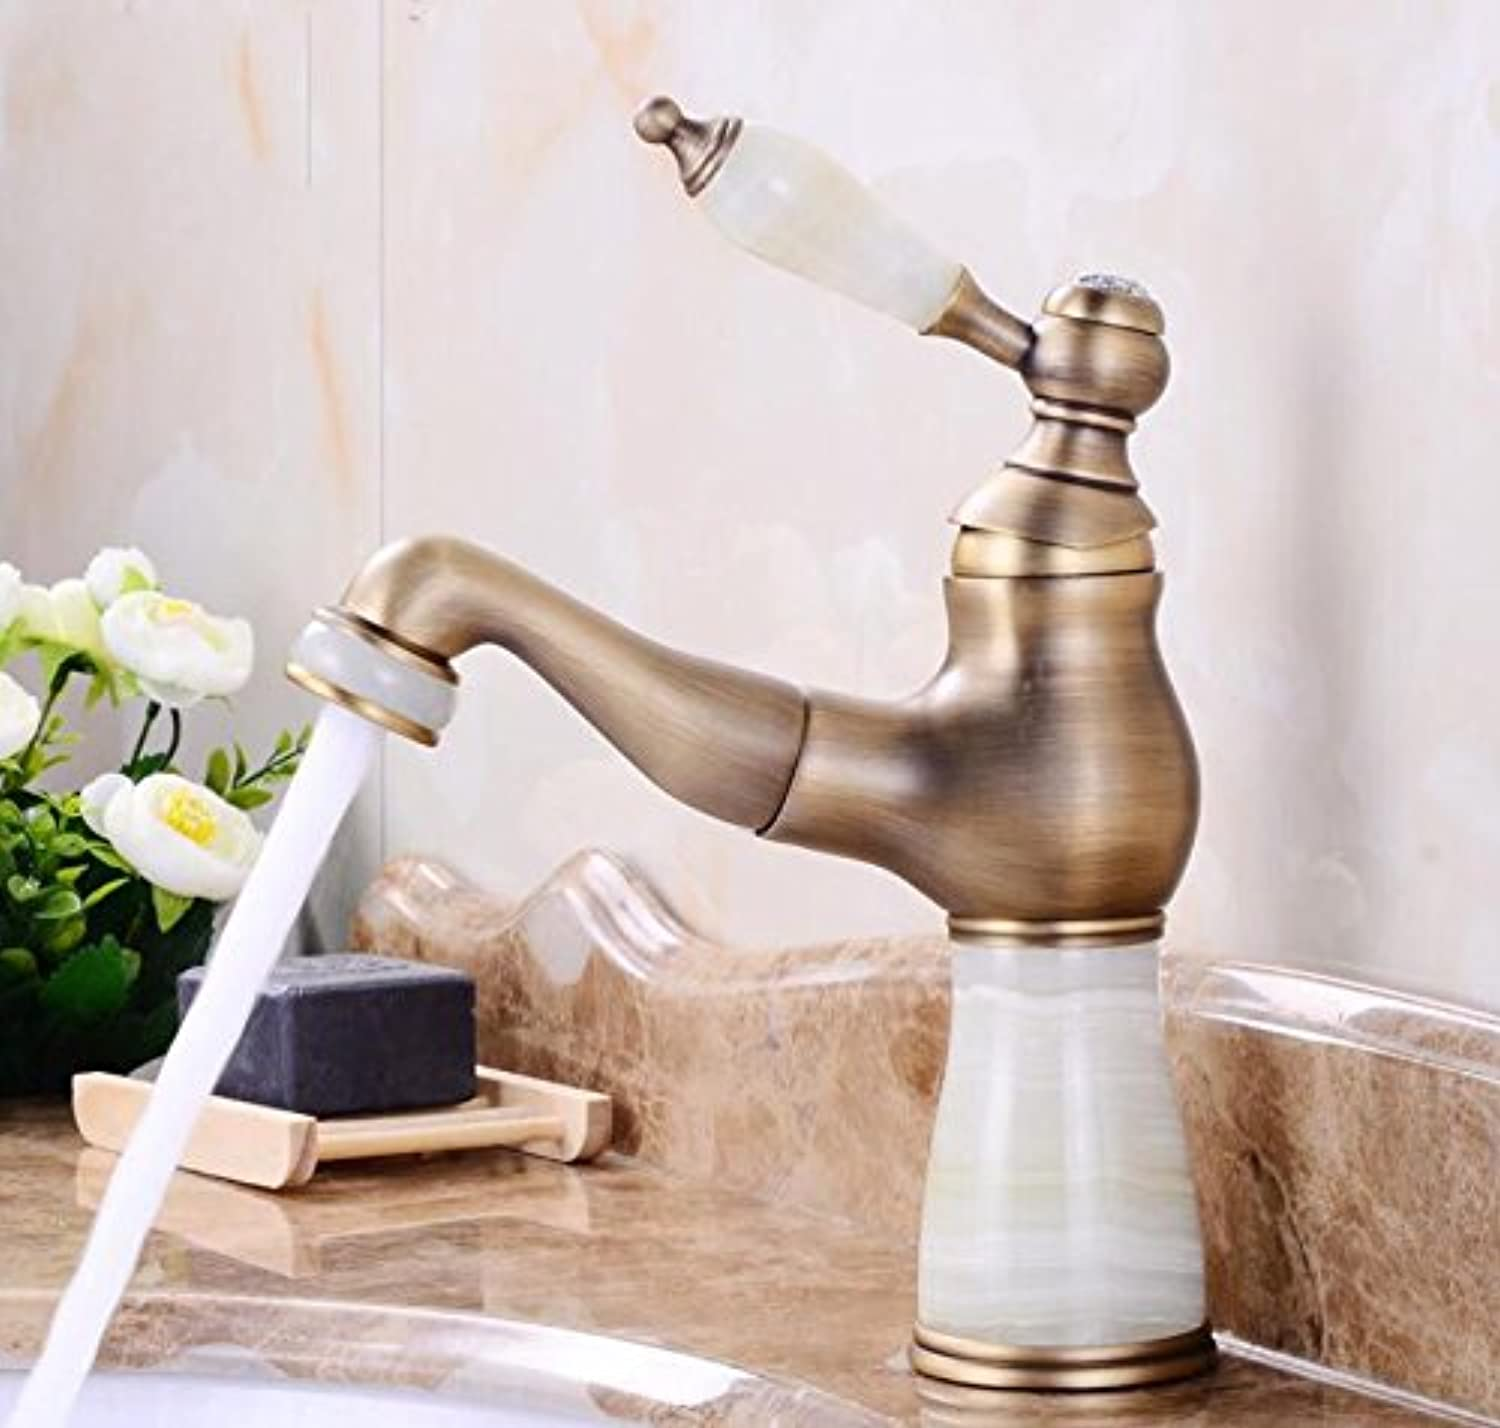 Makej European-Style Natural Jade Faucet Brass Bathroom Pull Out Hot and Cold Mixet Tap Mounted Faucet